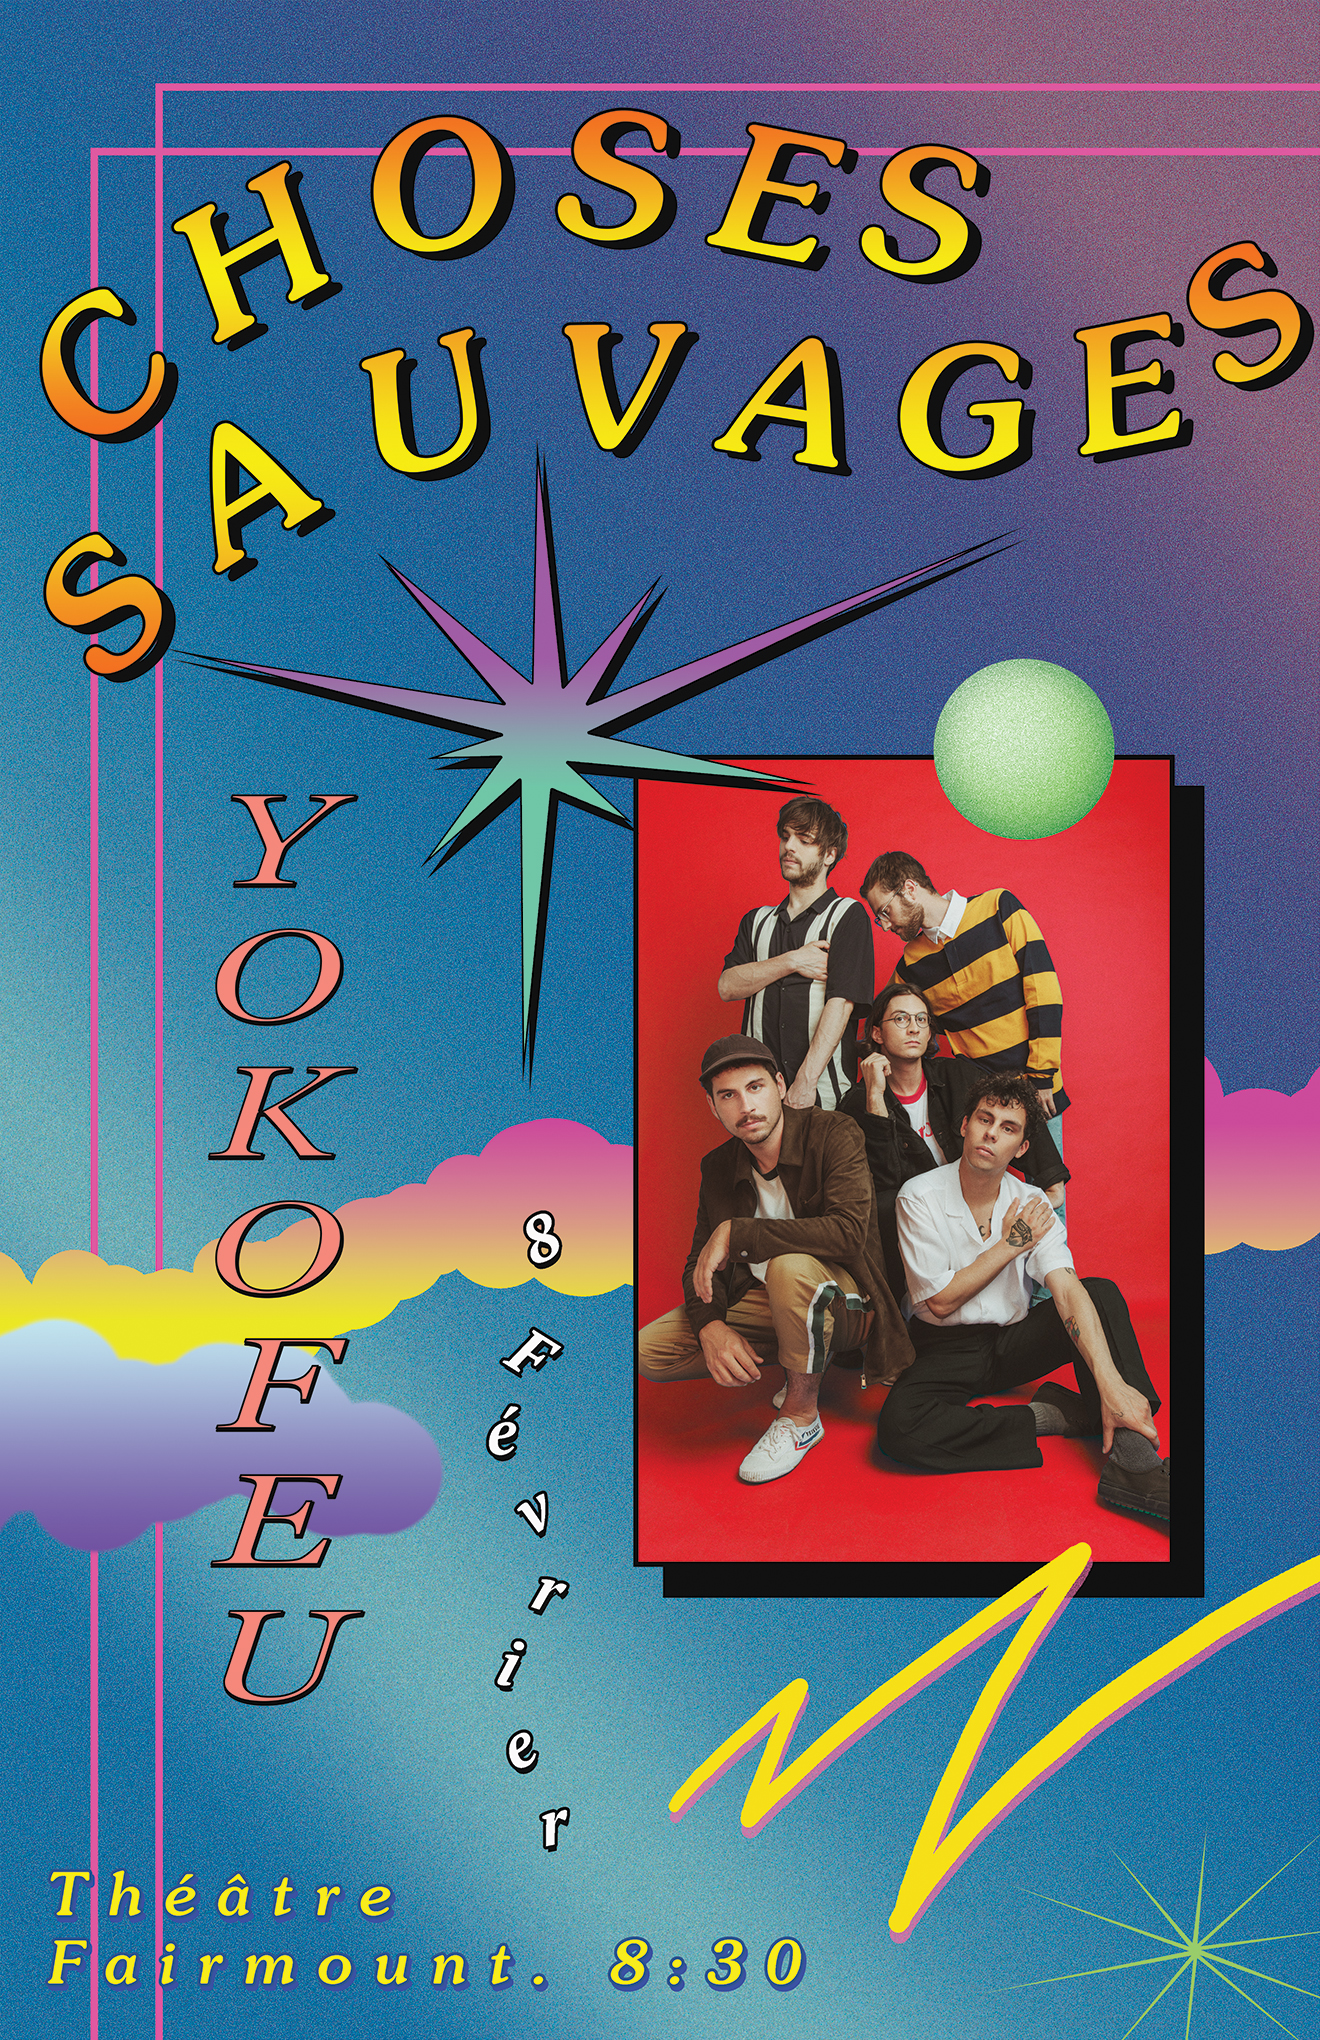 Choses_Sauvages_Poster-.jpg